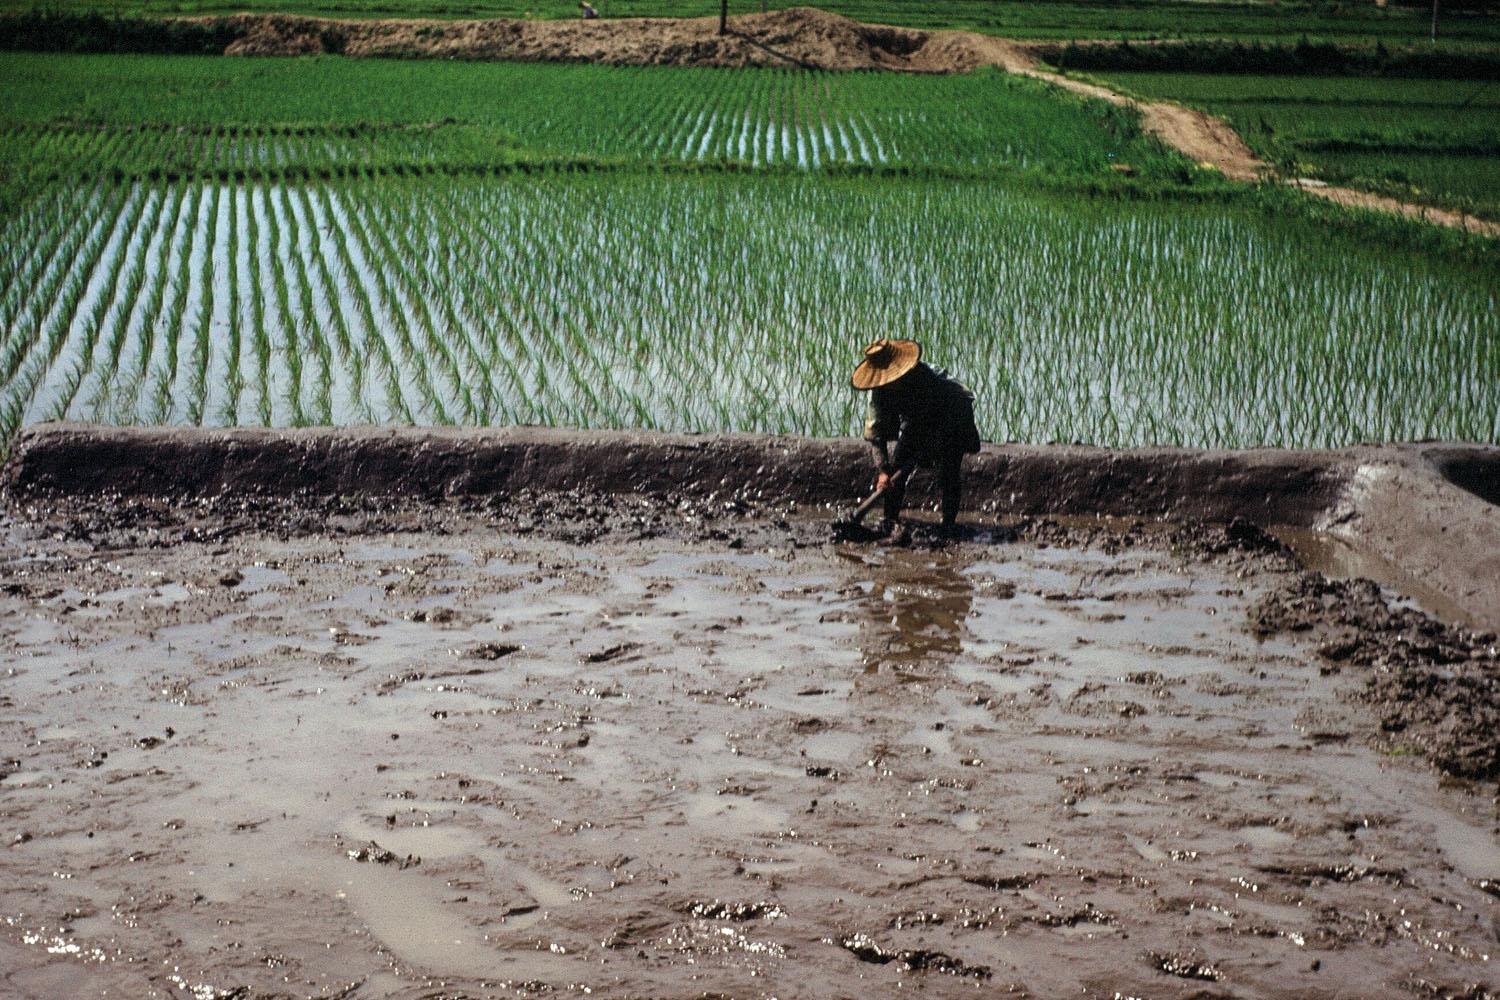 60- Preparing Rice Paddy for Planting